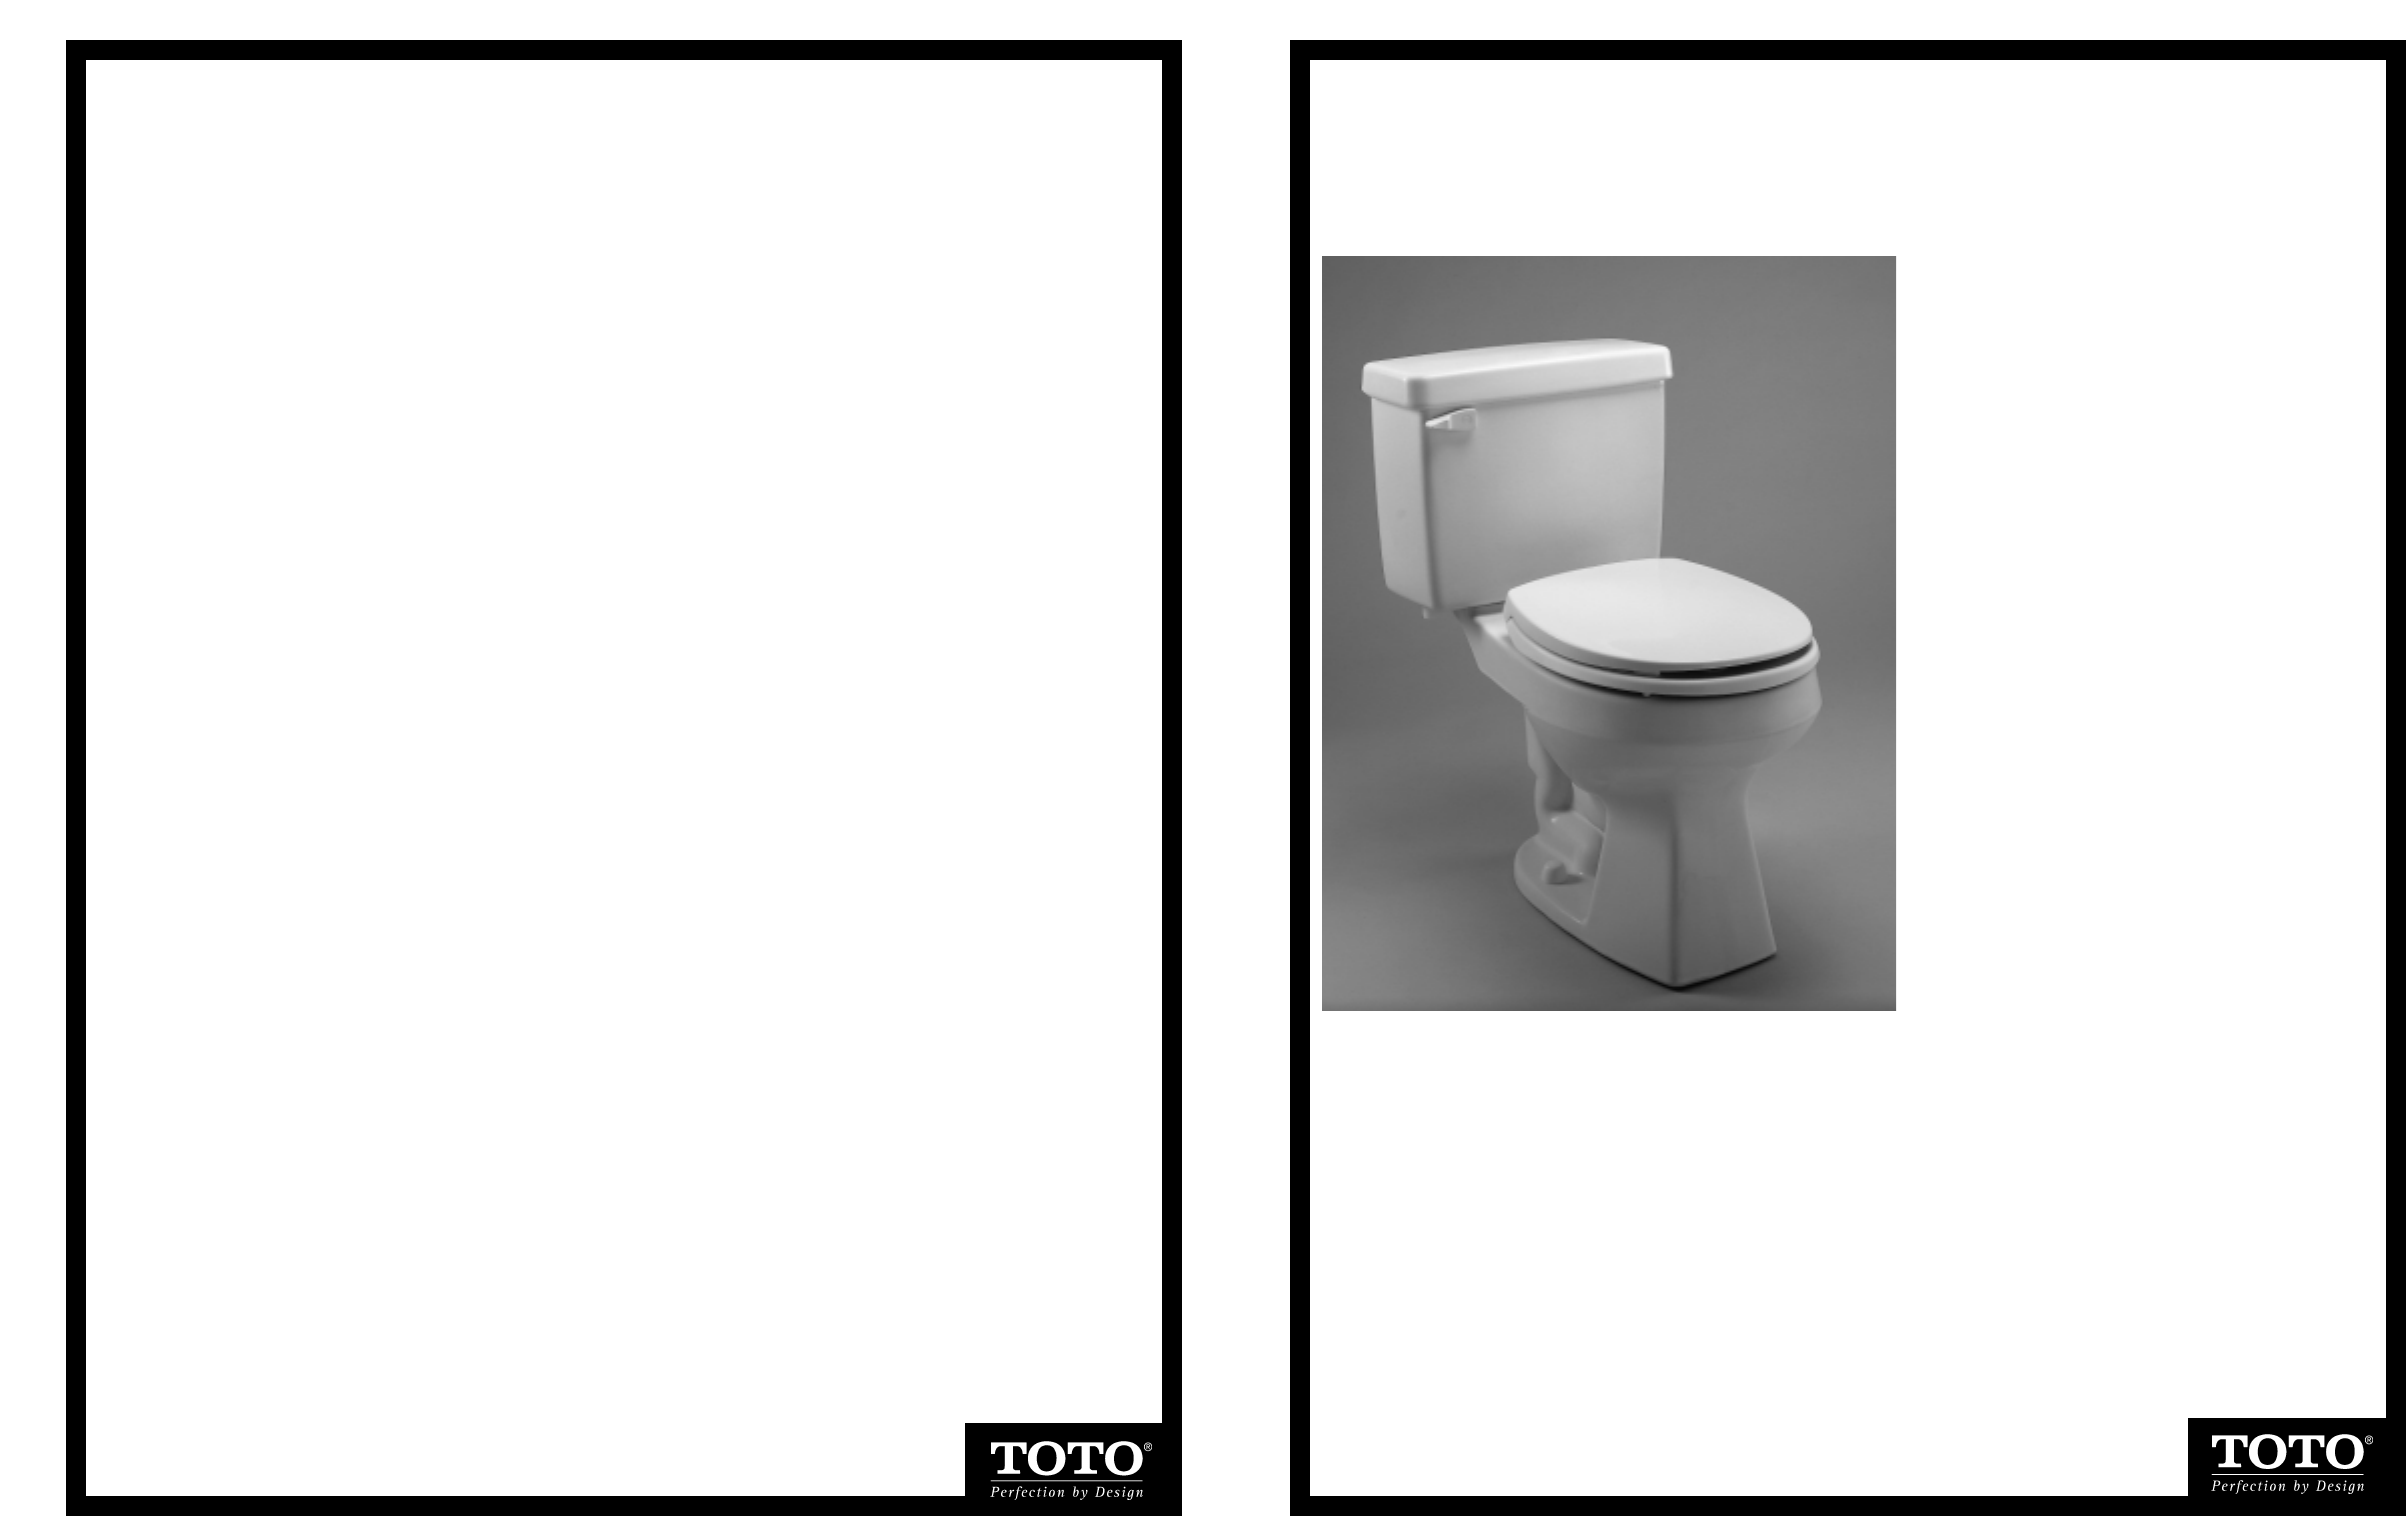 and top design line large cool when price comes toto at any toilet points with seat to models improves bathroom households plumbing insitu a of it time one washlet replaces the different standard range offers